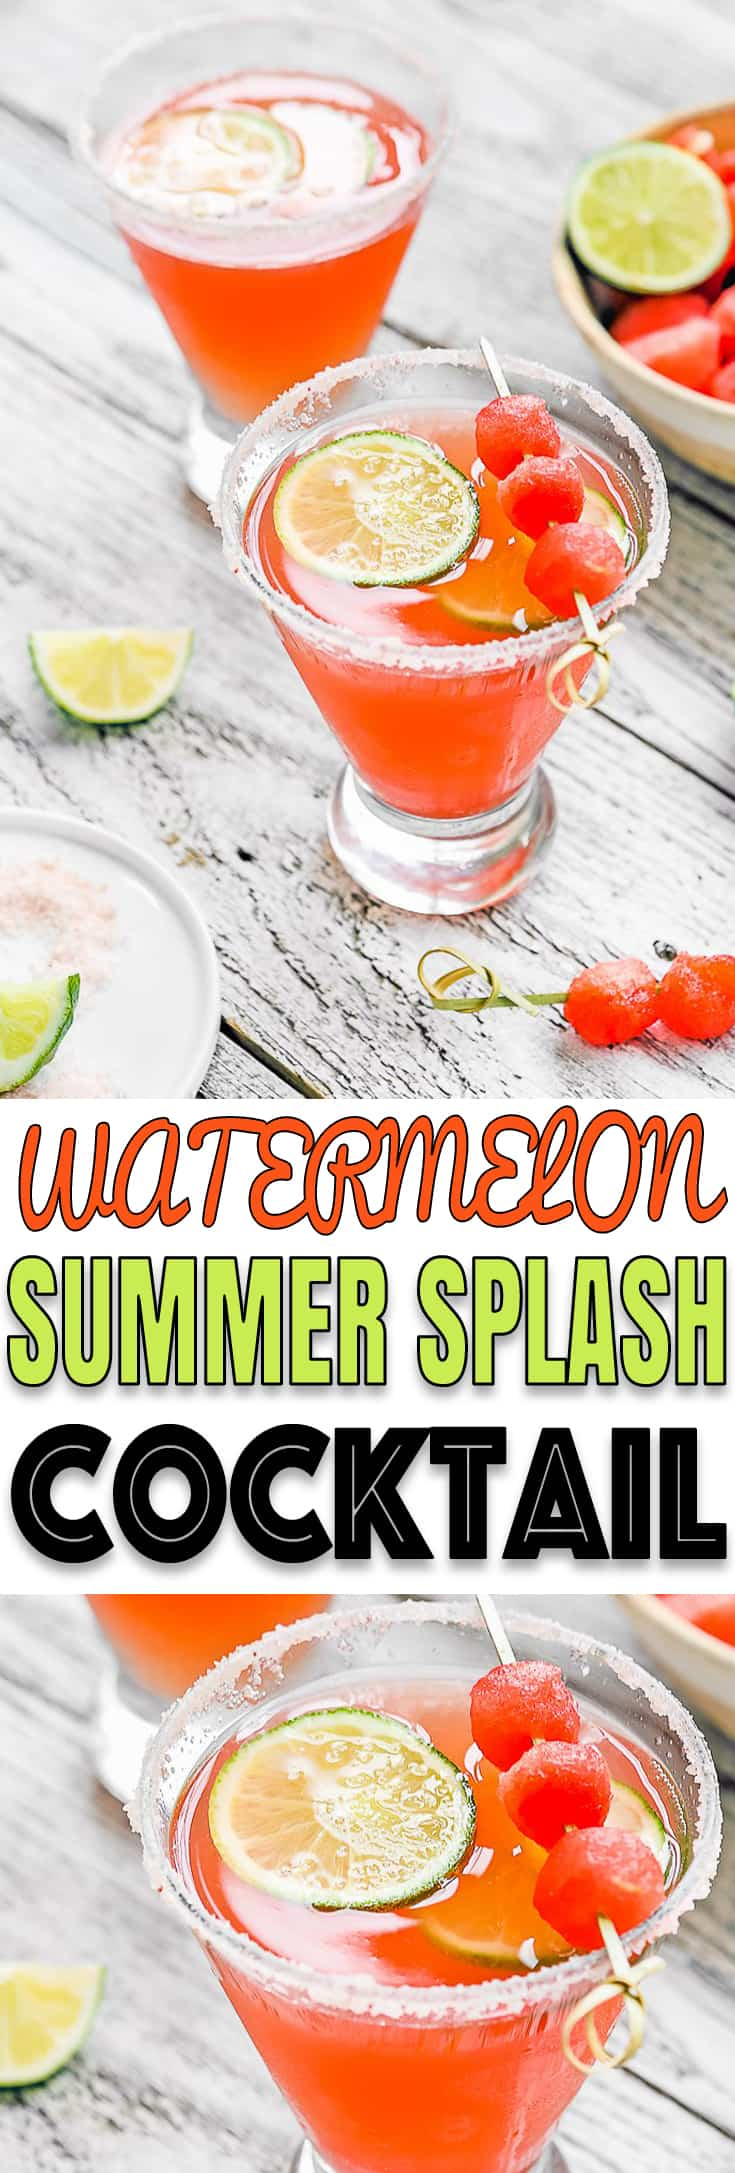 Cool down this Summer with this Watermelon Summer Splash Cocktail!! Fresh Watermelon, Tequila, and Moscato shaken to pure perfection. THE BEST flavor combo, so refreshing! https://mommyshomecooking.com